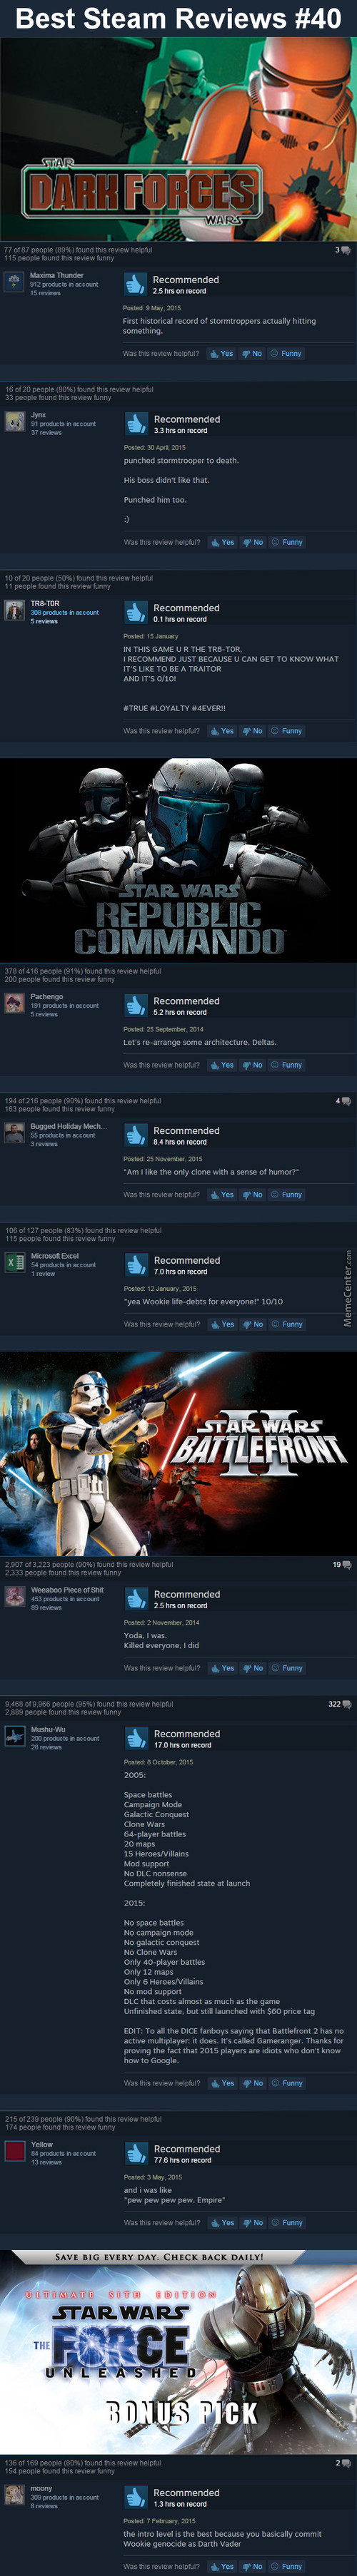 Best Steam Reviews #40 - May The 40Th Be With You.